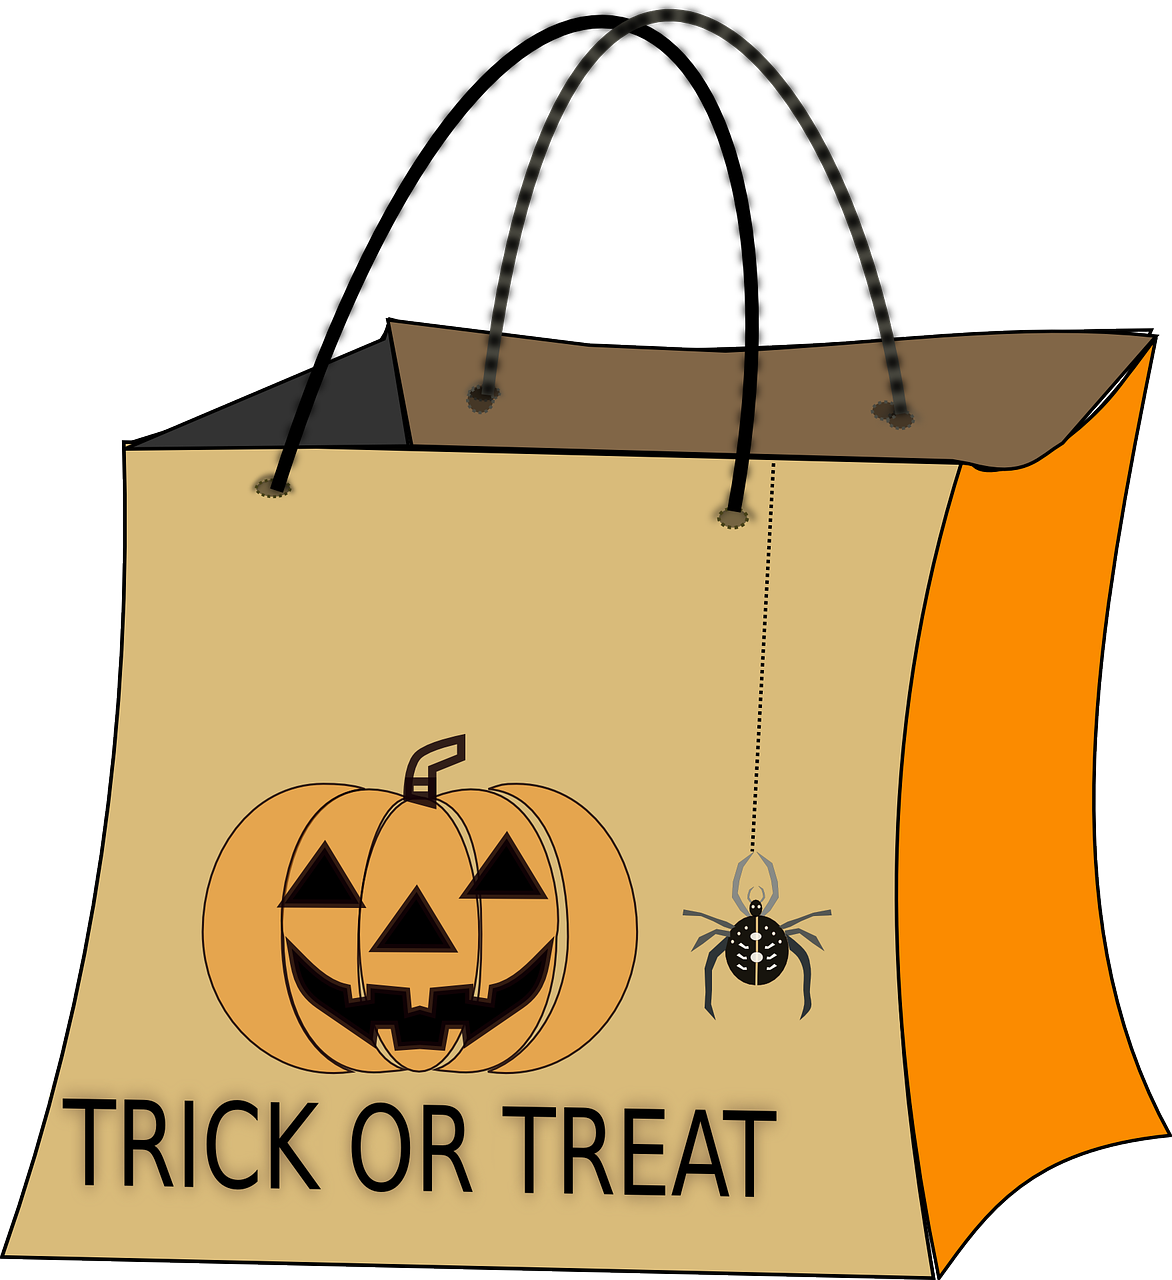 Halloween safety tips clipart png download mySafetynews.com » Halloween Safety Tips – On and Off the Job png download